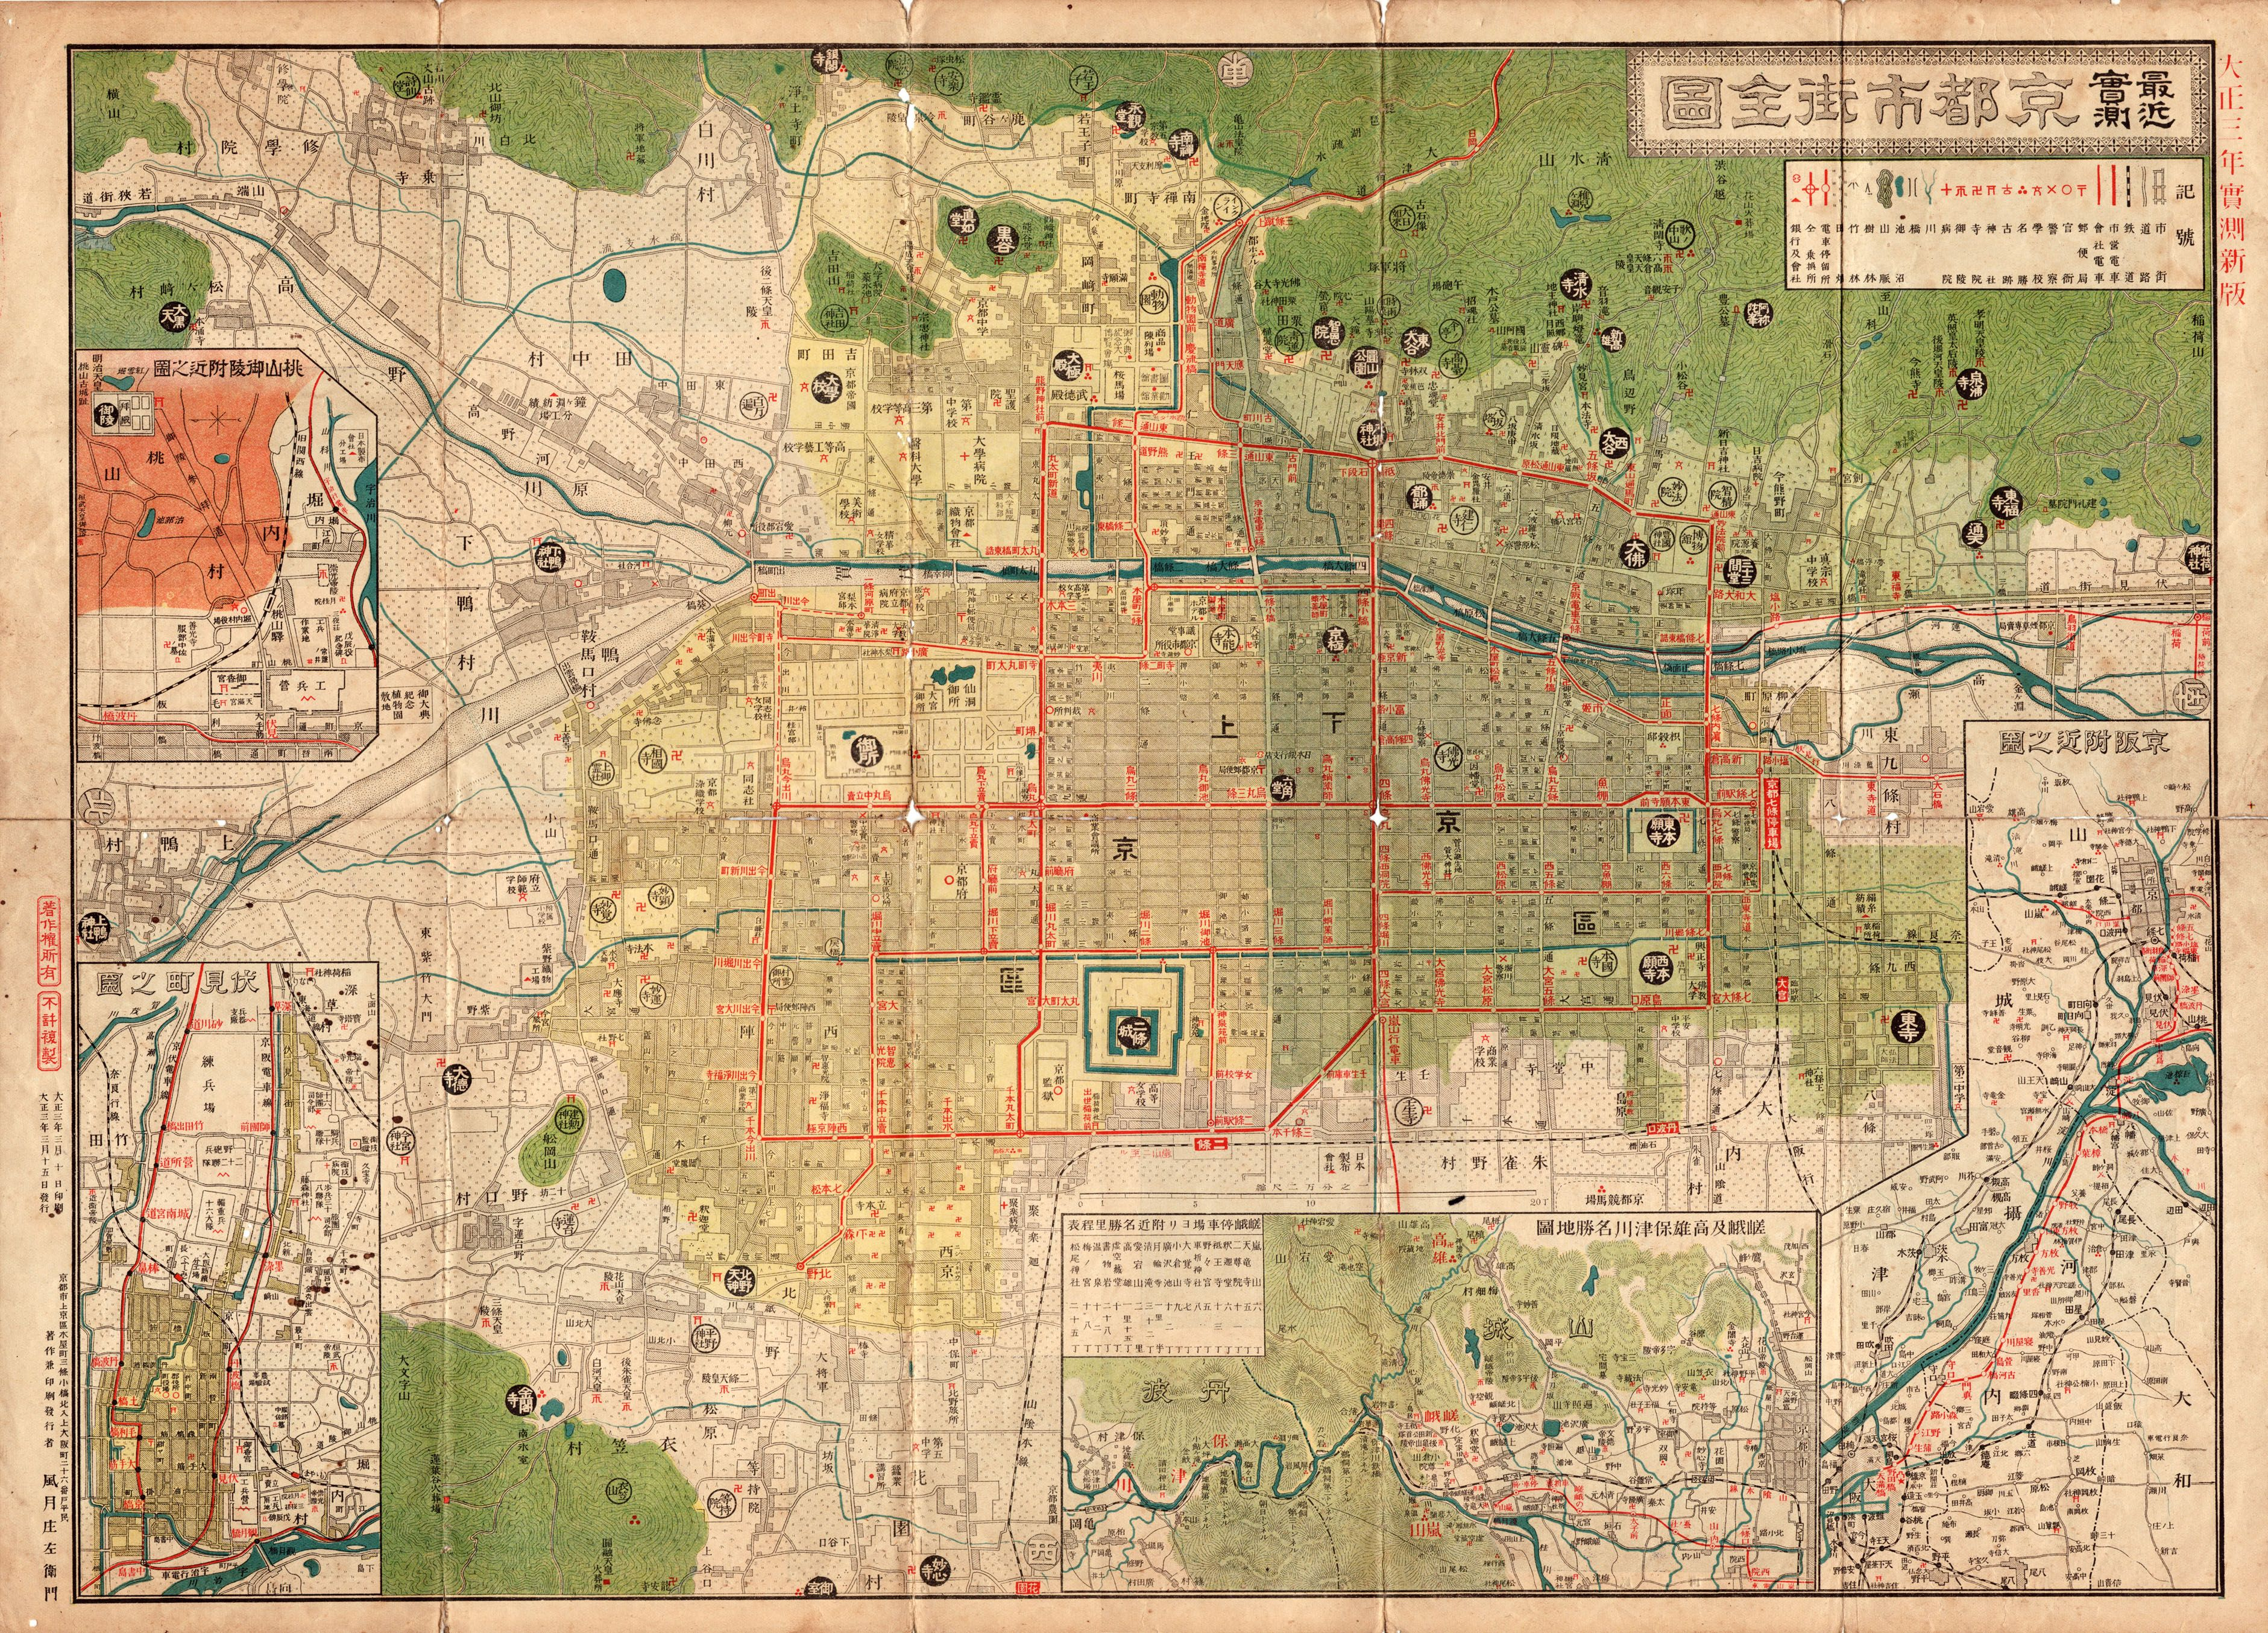 Japankyoto1914g 37622708 maps pinterest kyoto japan kyoto 1914 world map old world maps by mapsandposters gumiabroncs Images